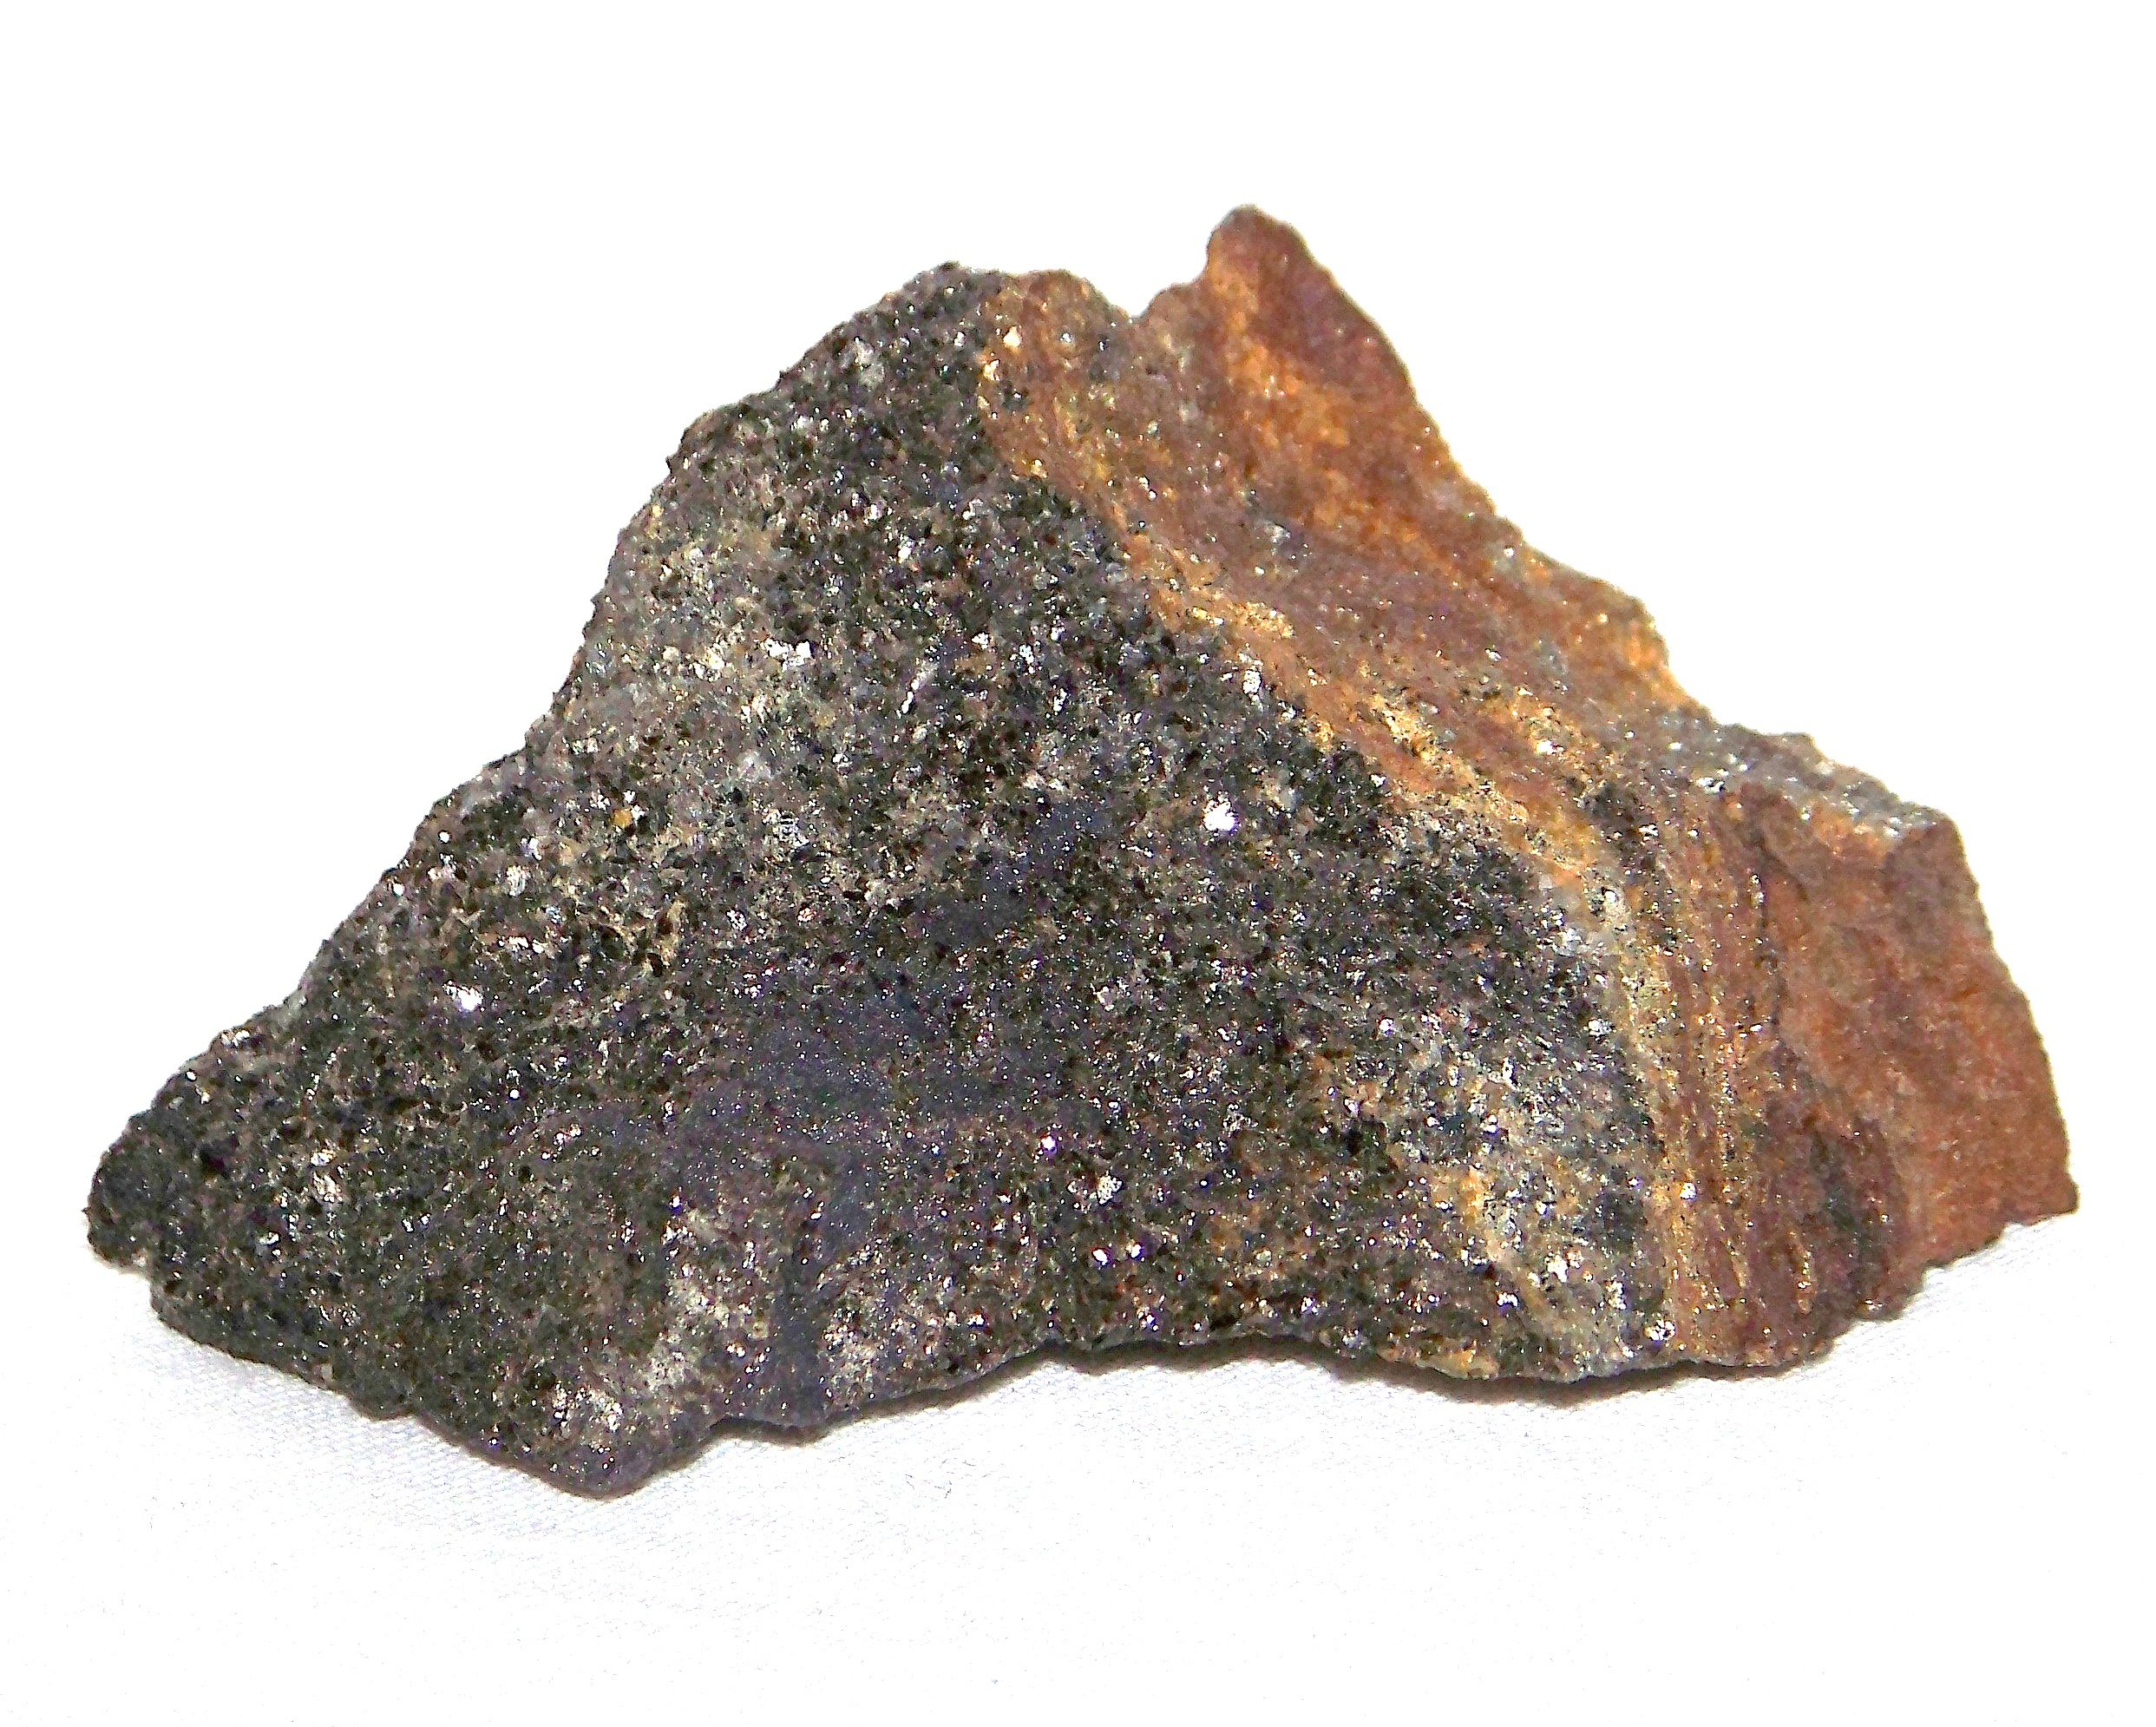 The surface of this hornfels specimen bears hydrothermal mineralization.